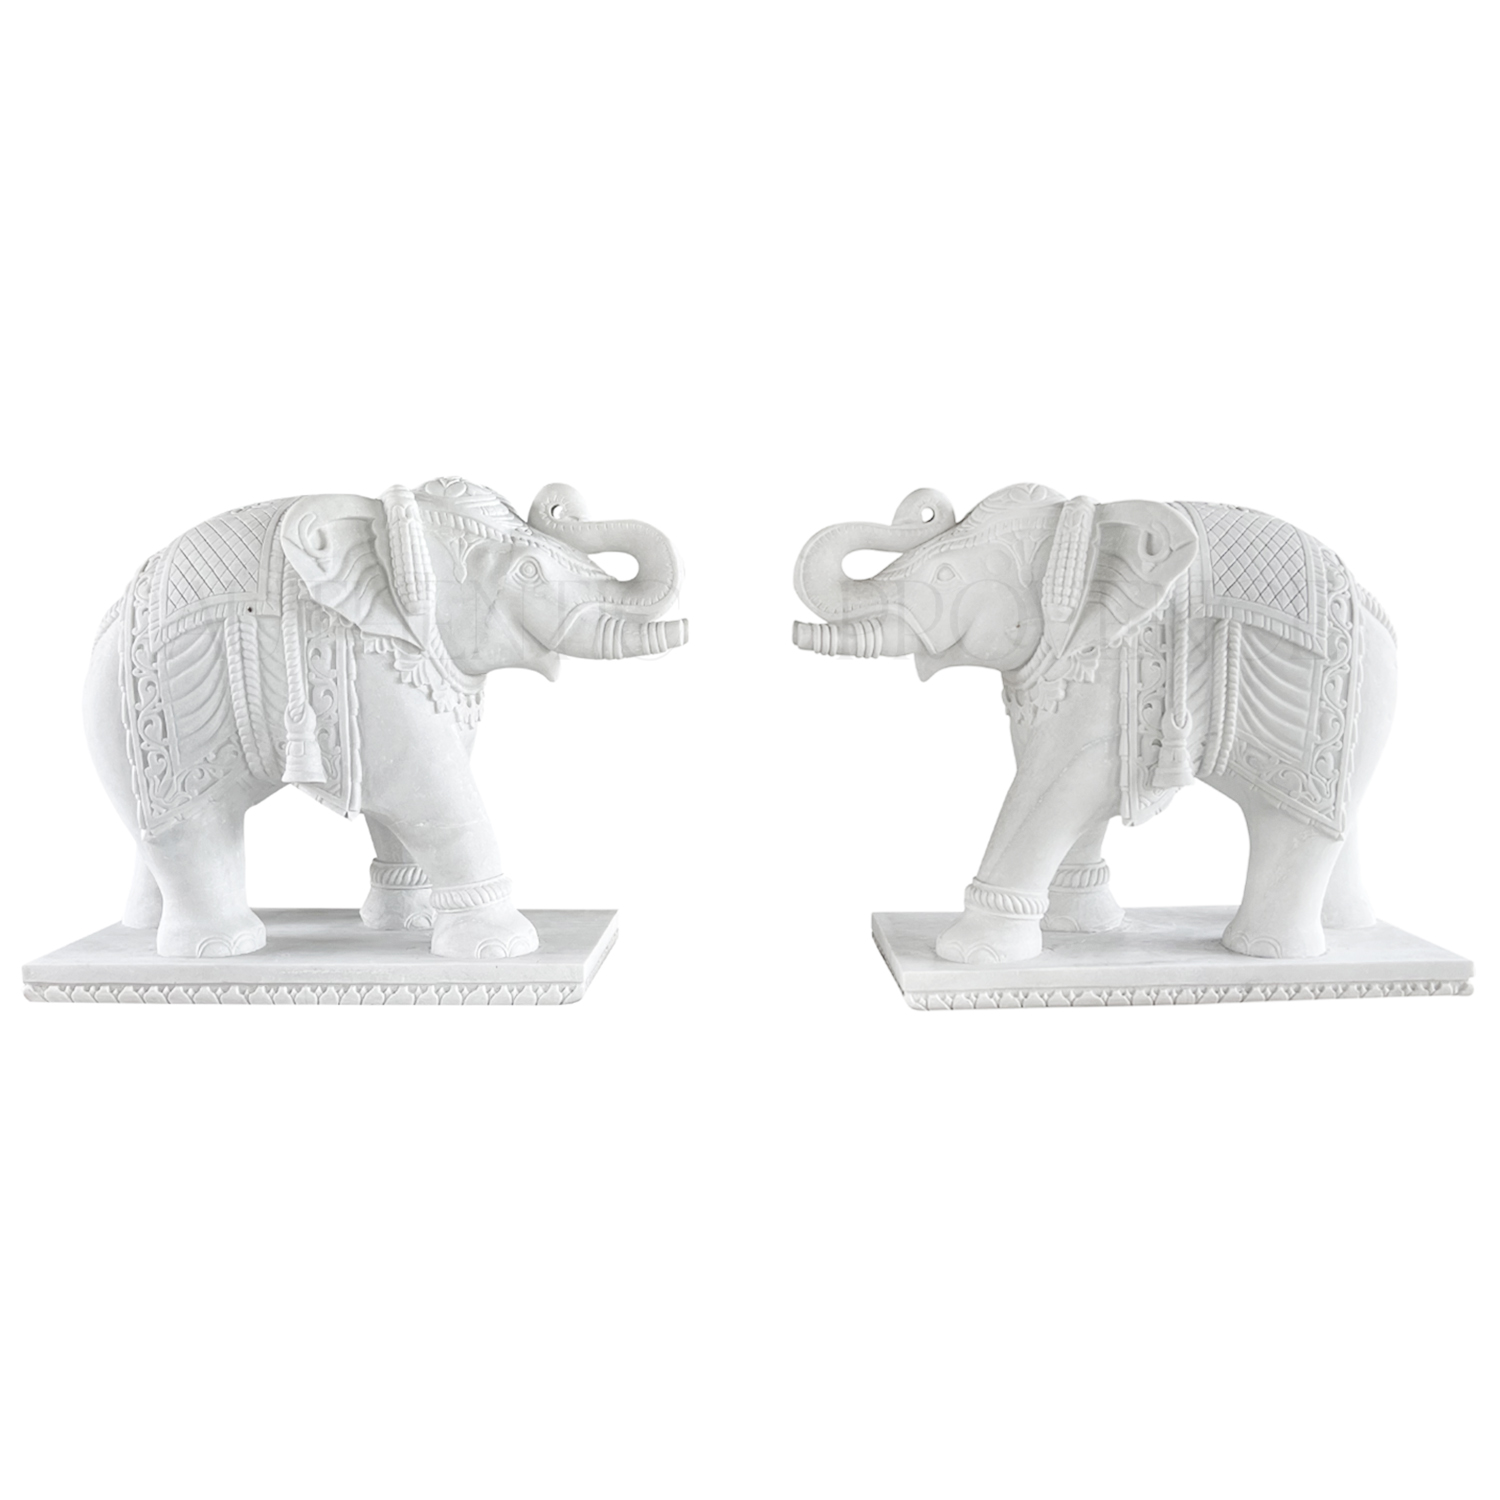 Pair of Indian Elephant Statues in White Marble